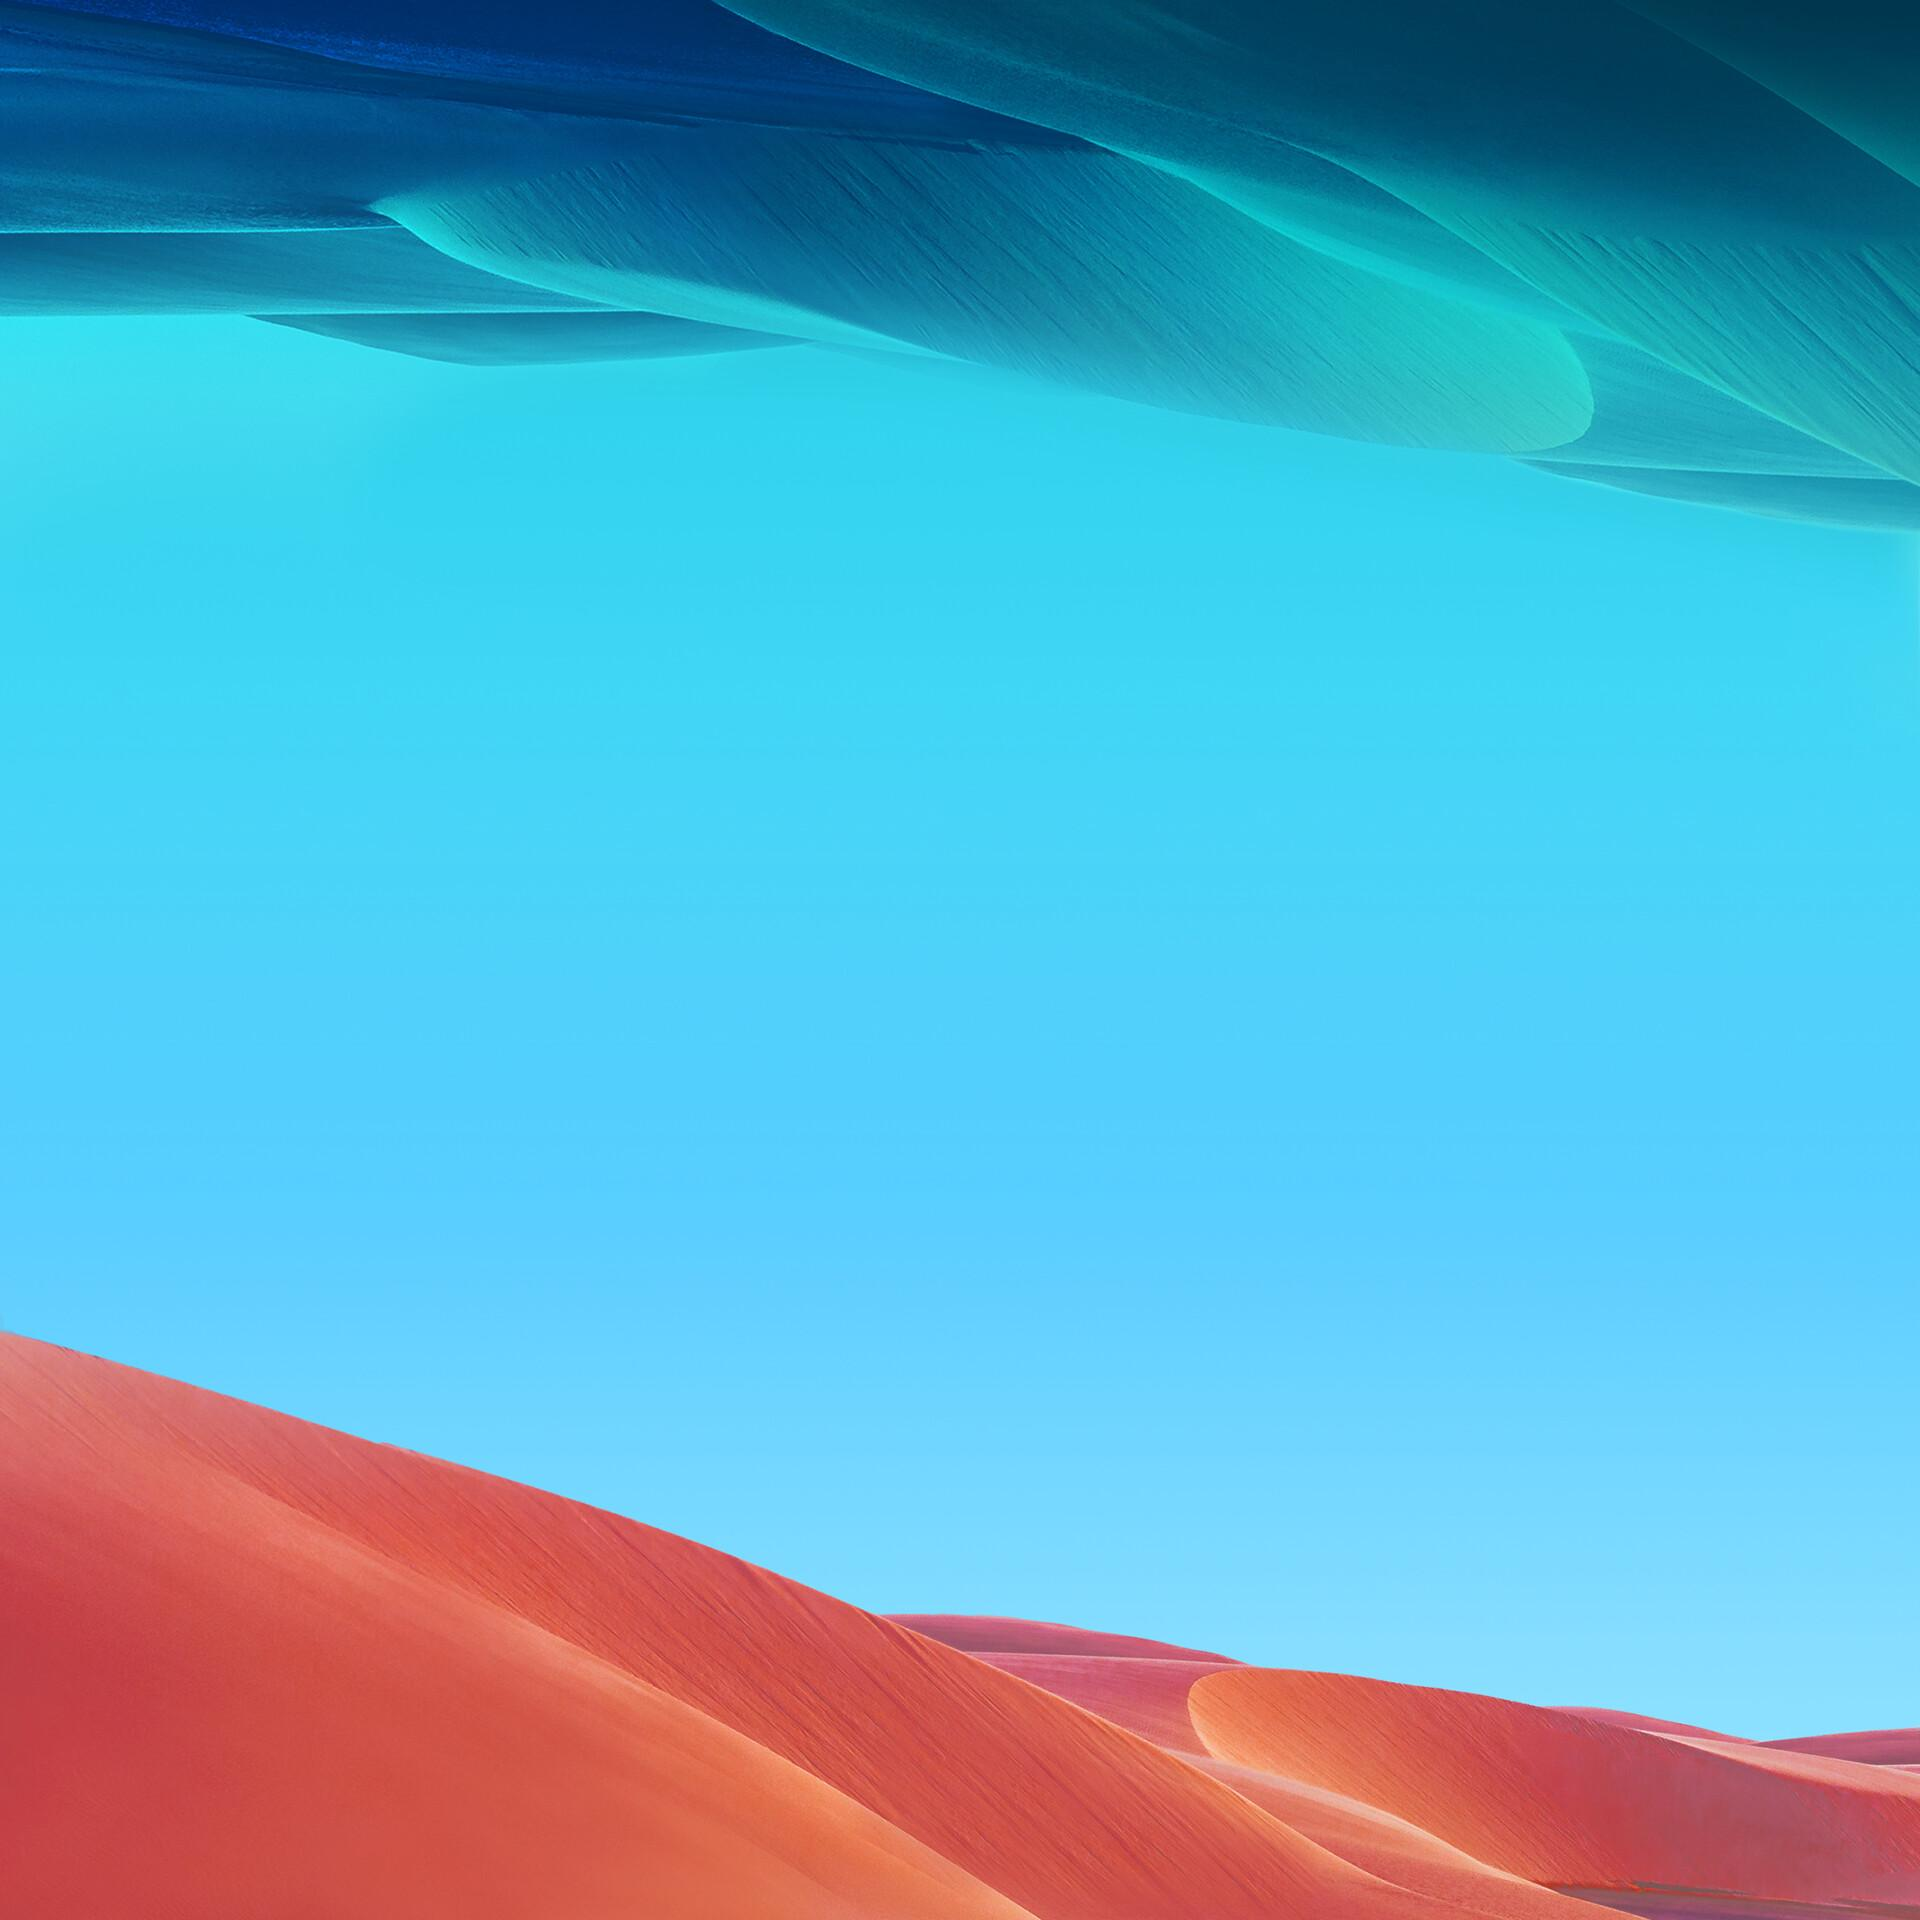 Samsung Galaxy M10, Galaxy M20 wallpapers now available to download